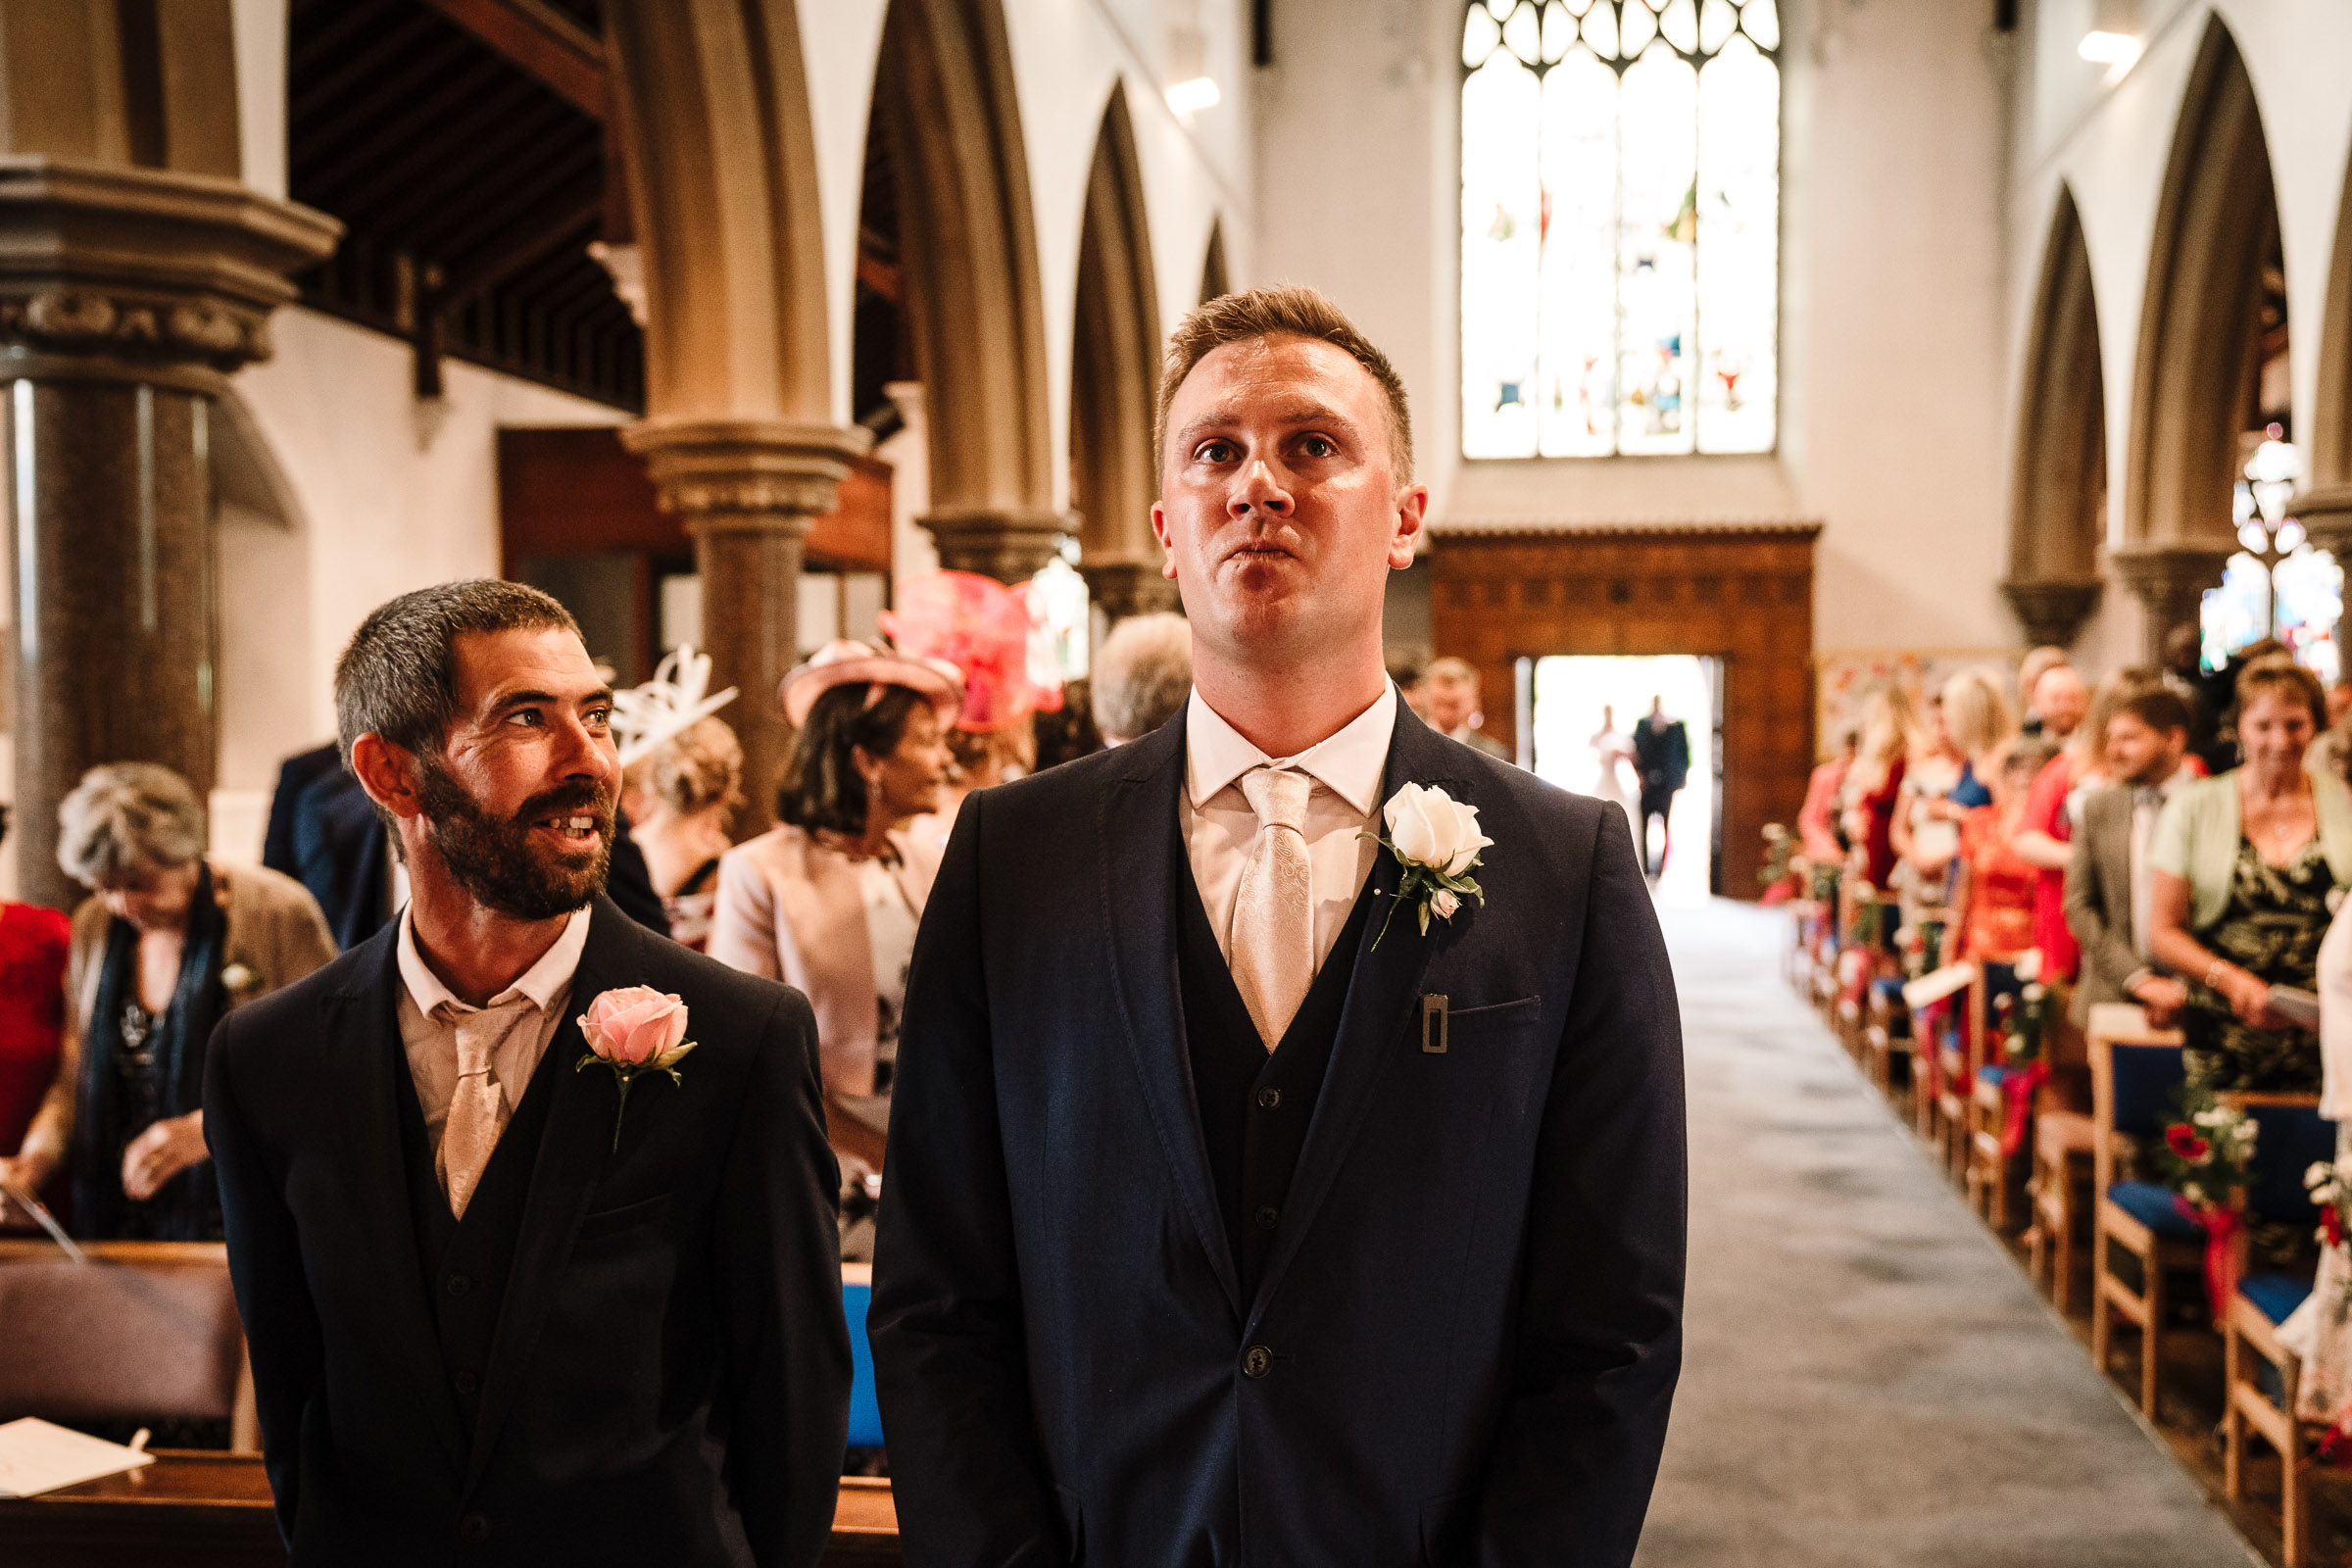 groom and best man waiting at the alter for bride to enter